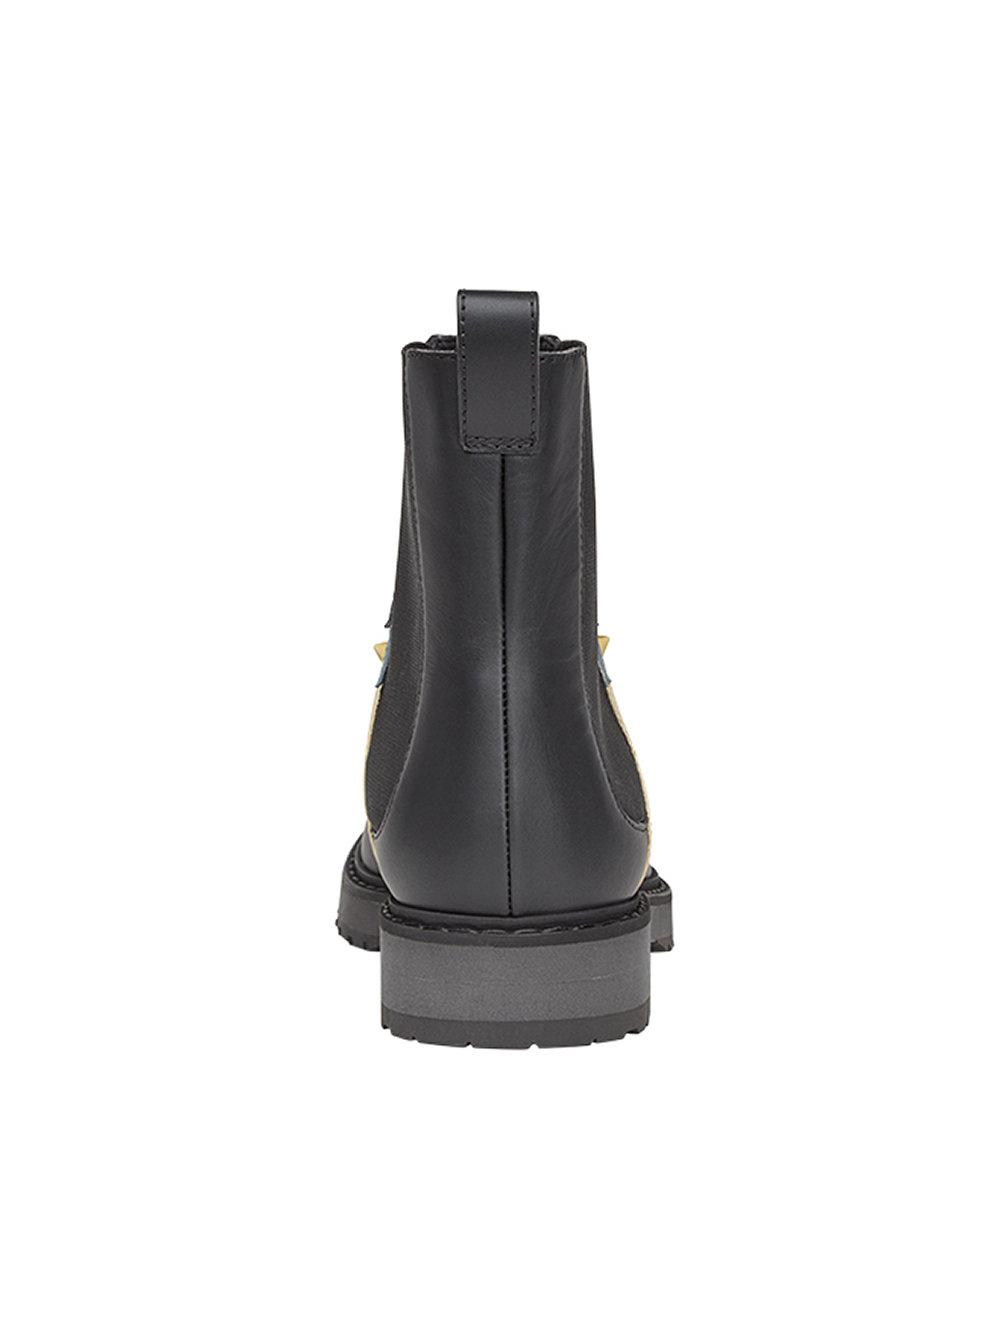 Fendi Leather Studded Chelsea Boots in Black